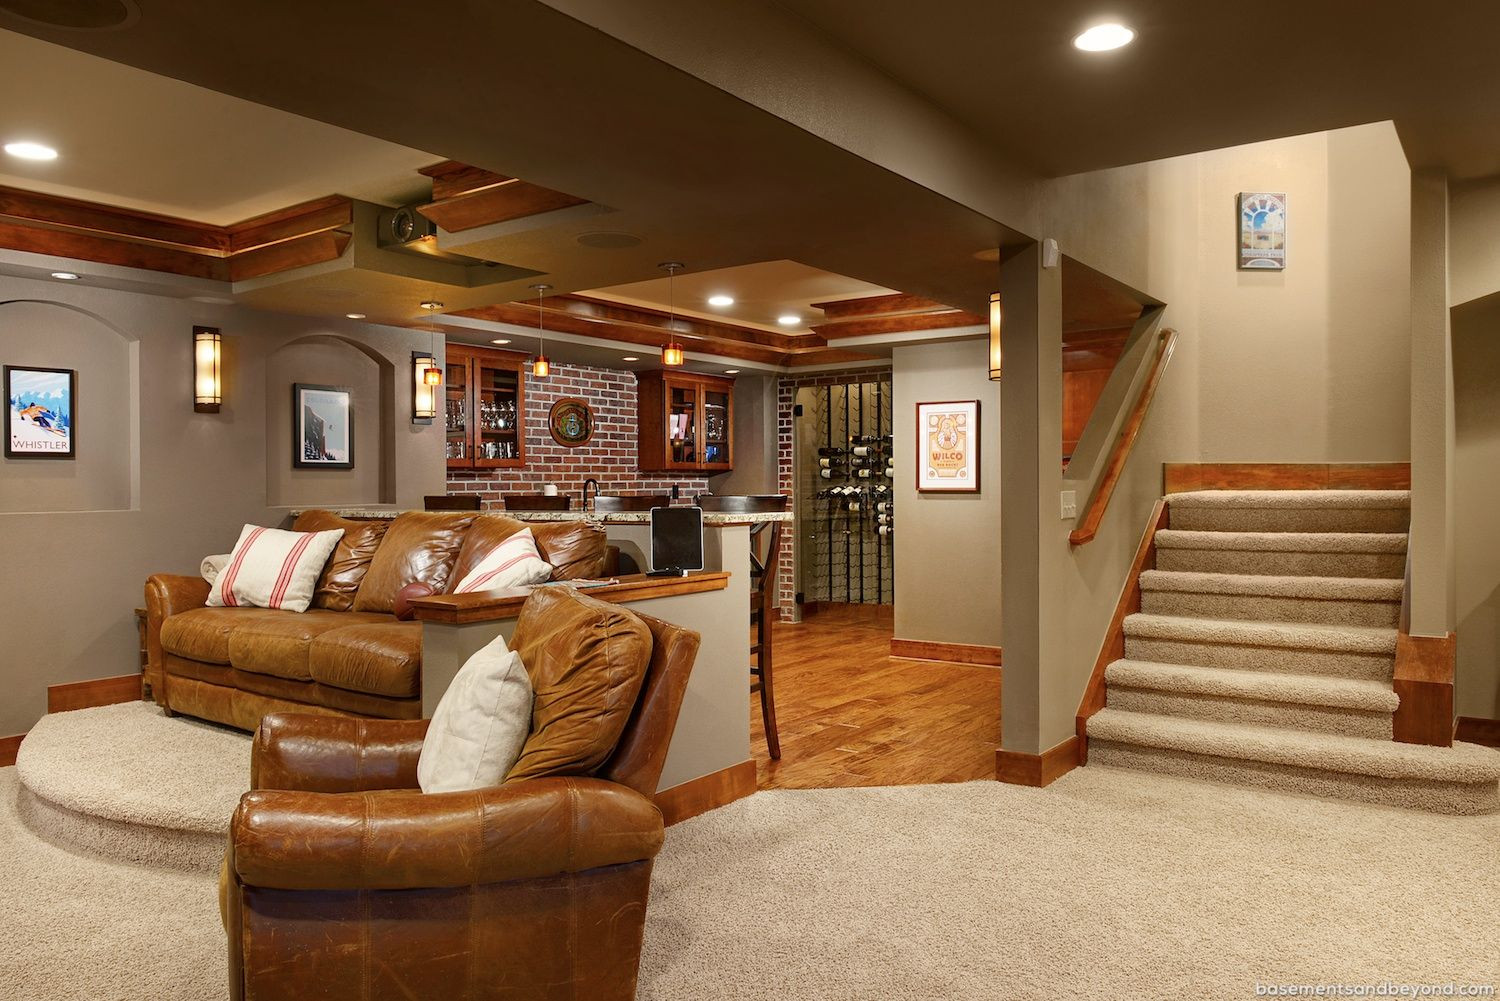 Best ideas about Pinterest Basement Ideas . Save or Pin Wow just superb REMODELLED BASEMENT IDEAS Now.